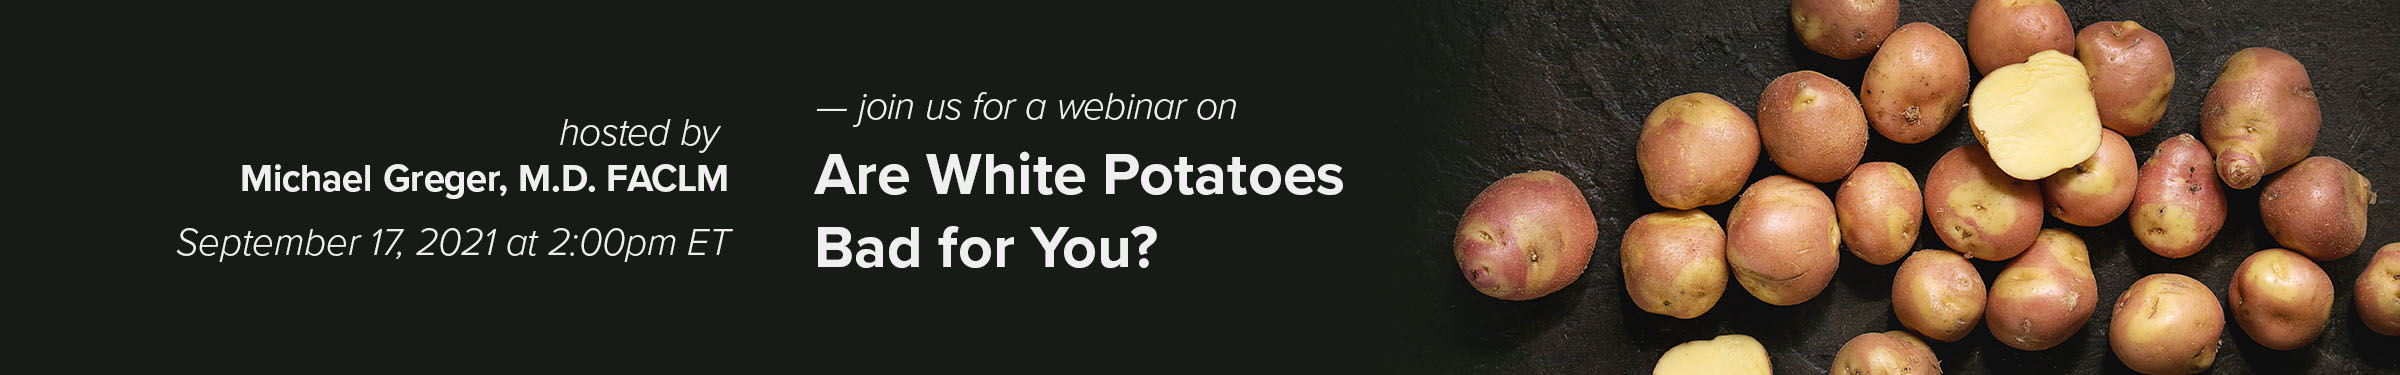 Are White Potatoes Bad for You?